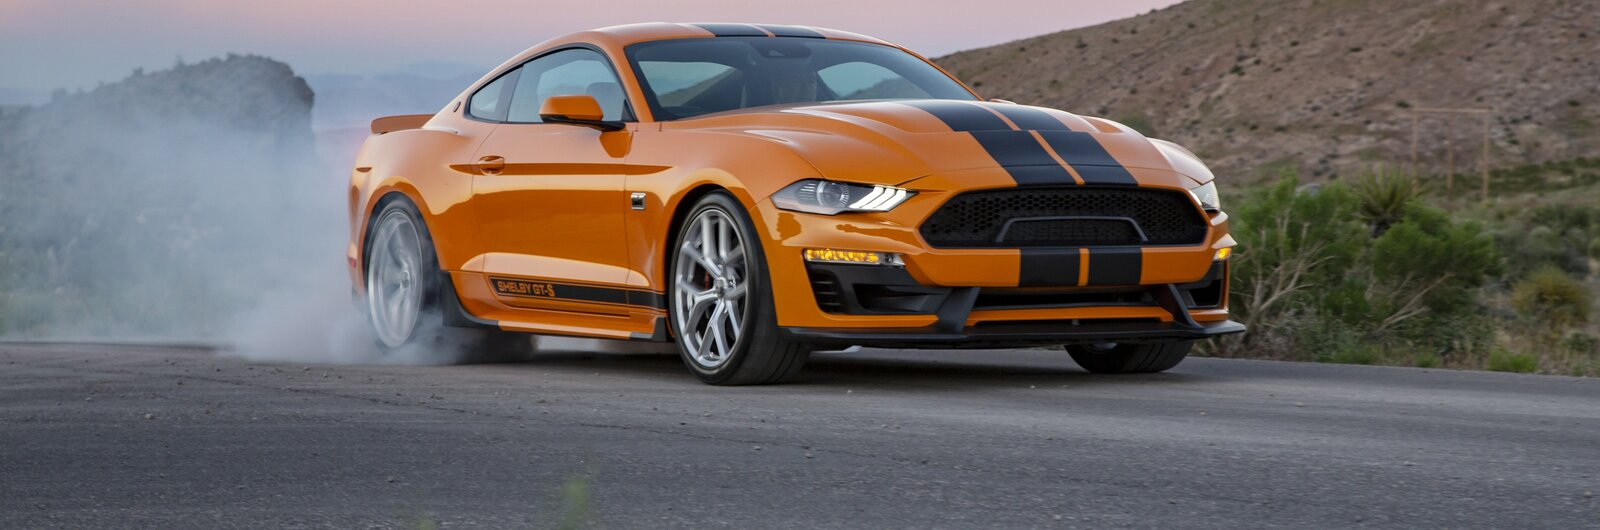 Exotic Car Rental Las Vegas More Luxe Less Bucks With Sixt